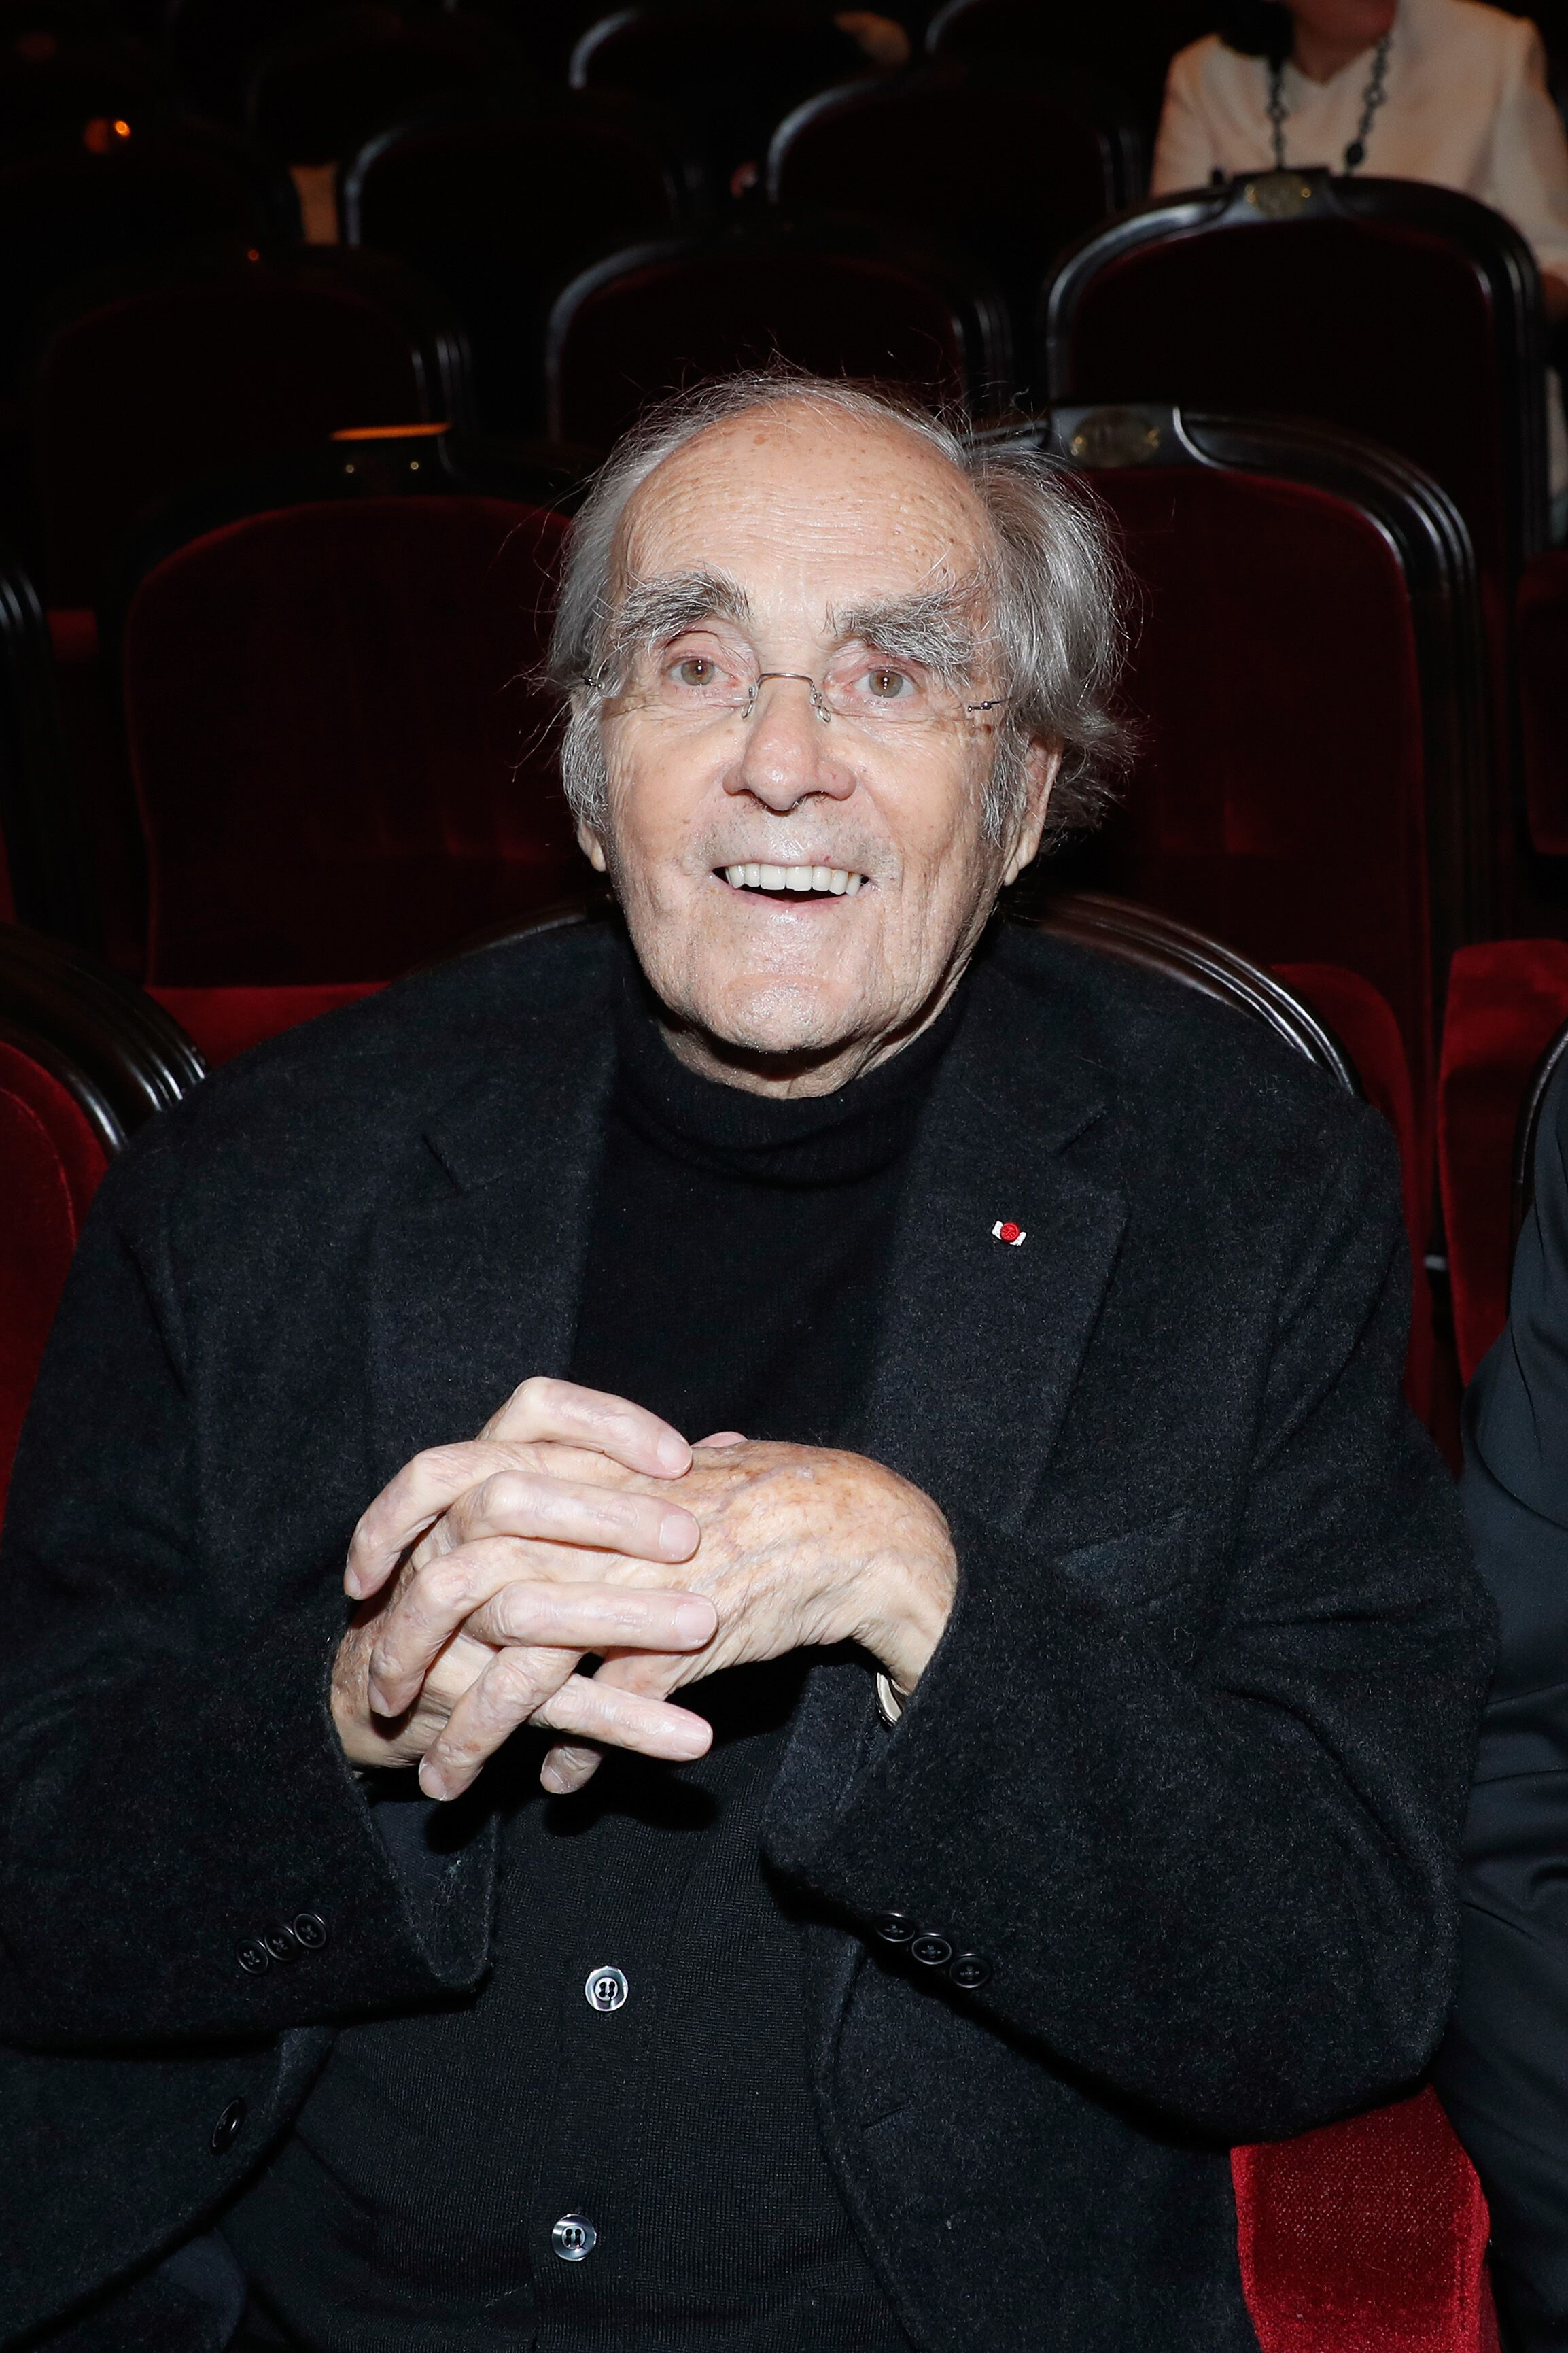 "Michel Legrand assiste à la réouverture du Théâtre de Marigny avec la Fée Musicale ""Peau d'Ane"" à Paris, France. 